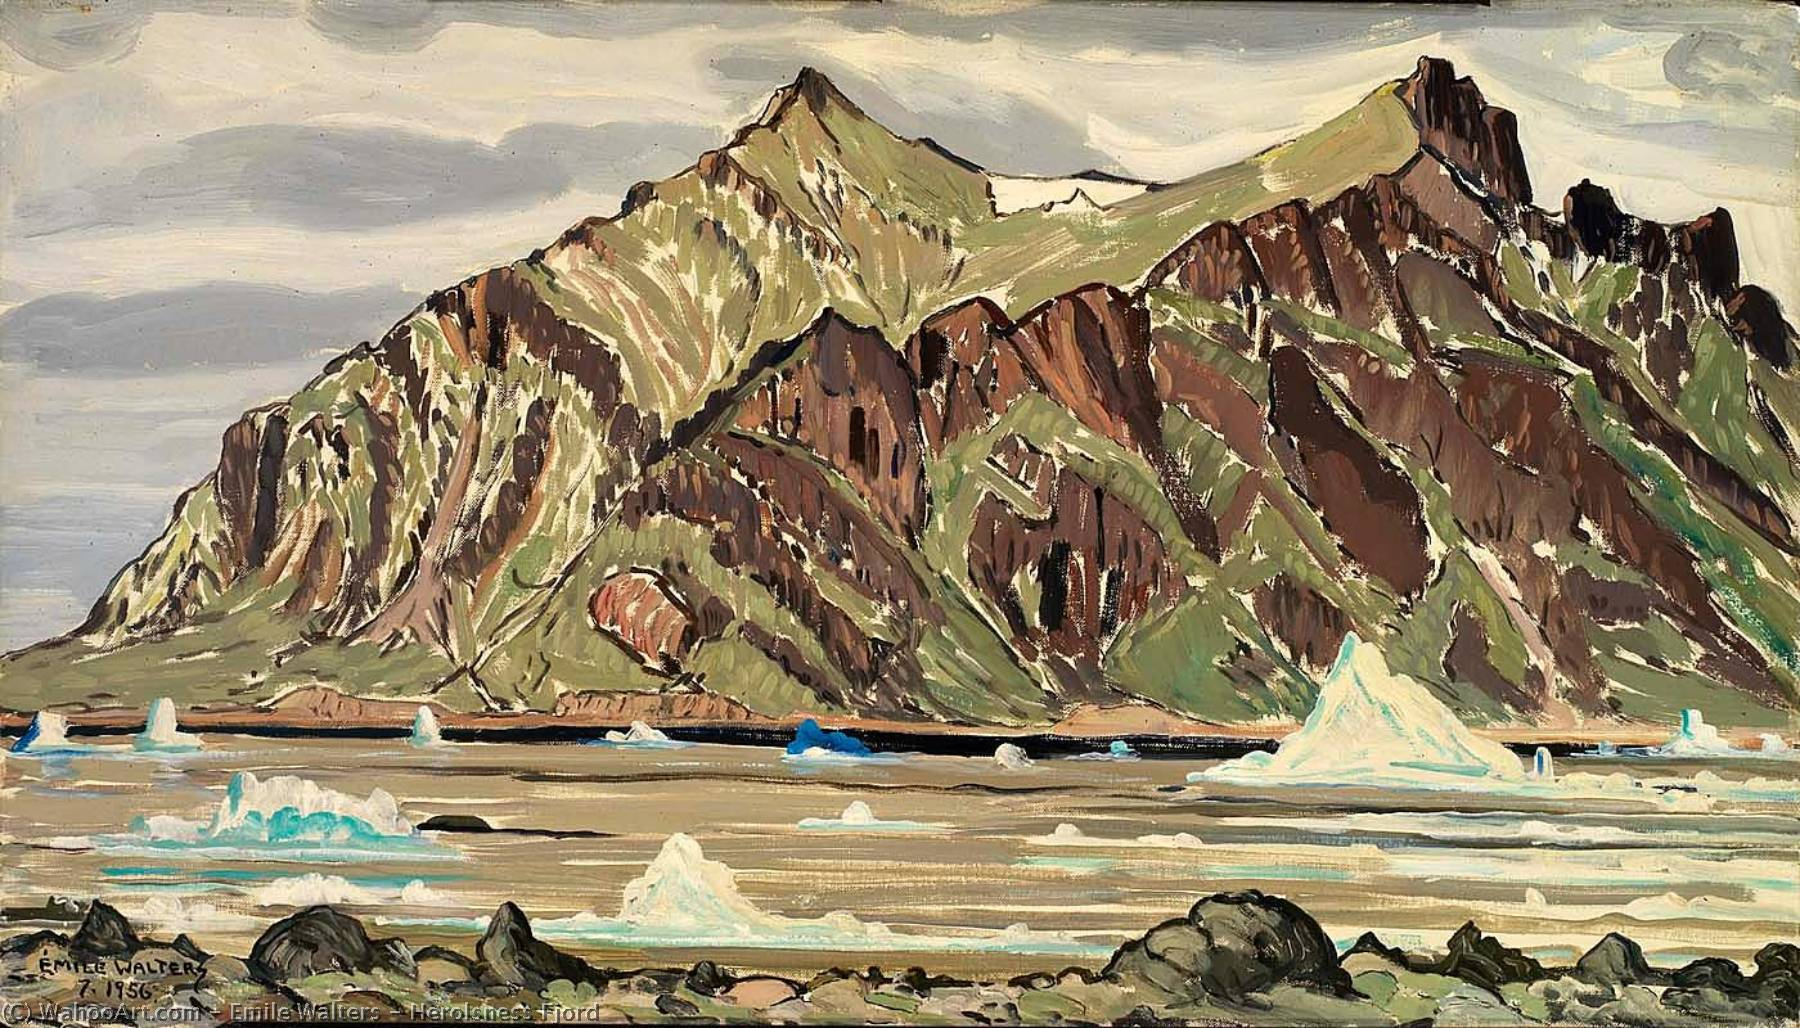 Herolsness Fjord, 1956 by Emile Walters | Oil Painting | WahooArt.com